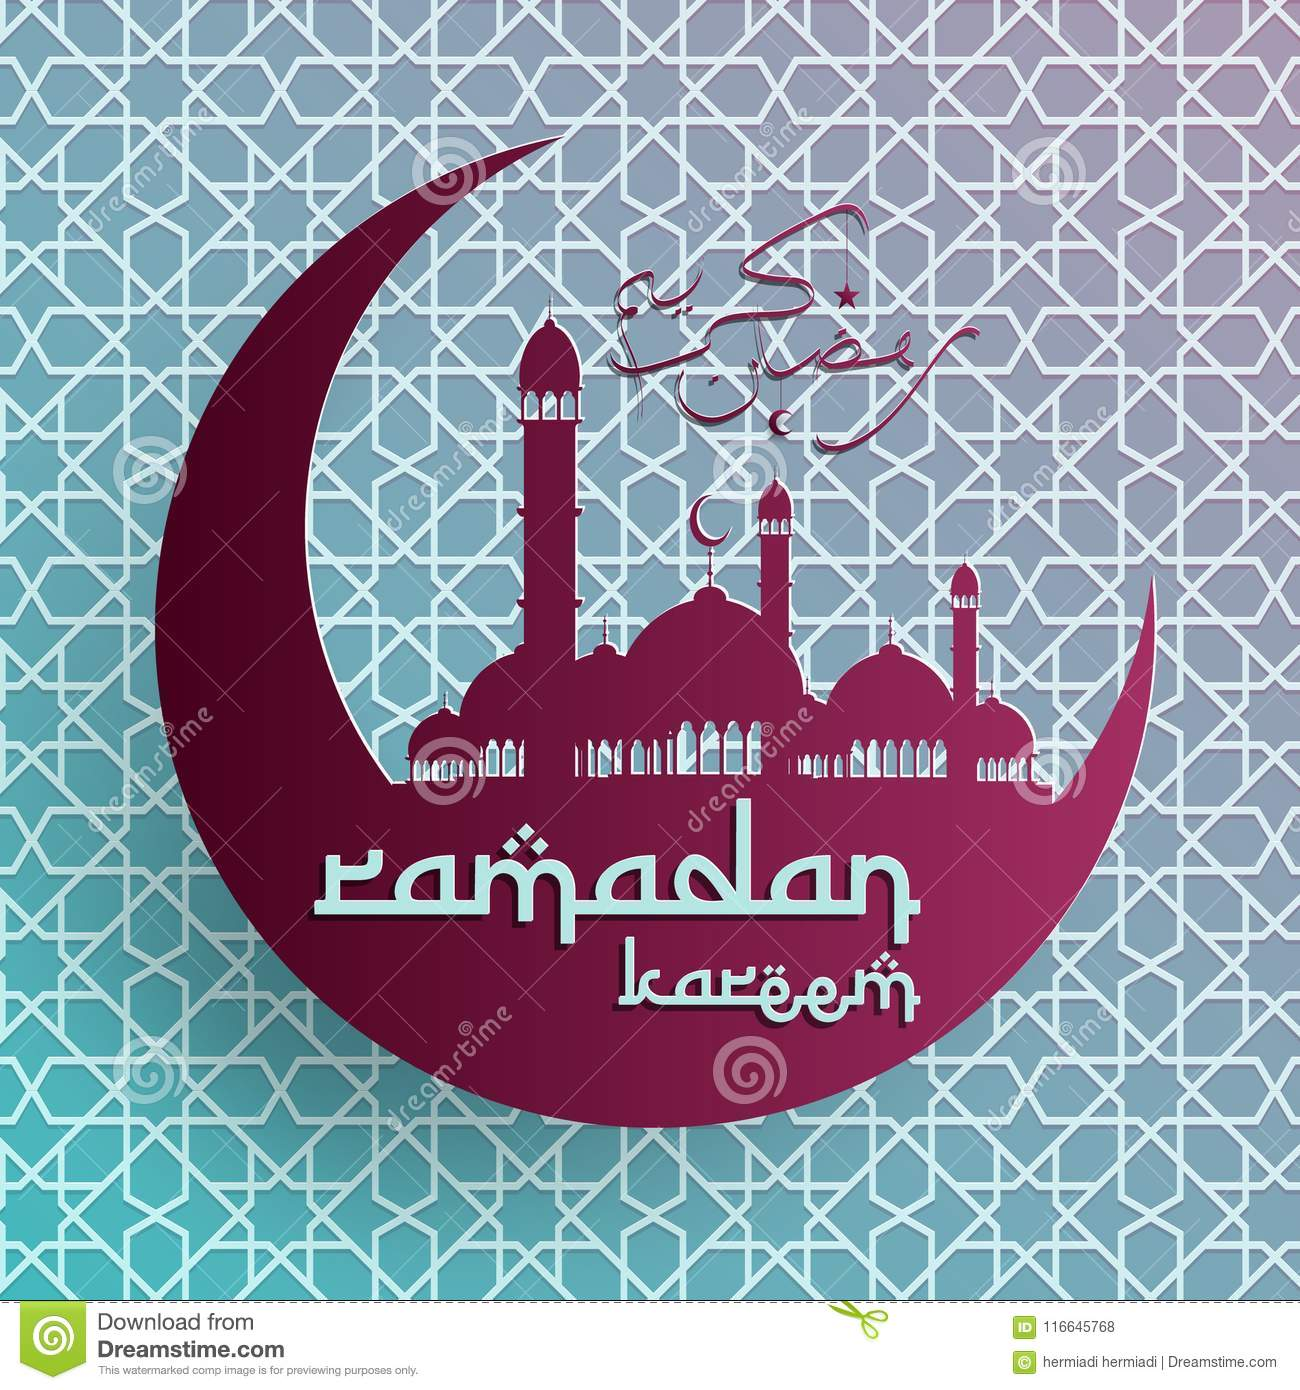 Ramadan Kareem Background, Ramadan Mubarak Background, islamischer Hintergrund